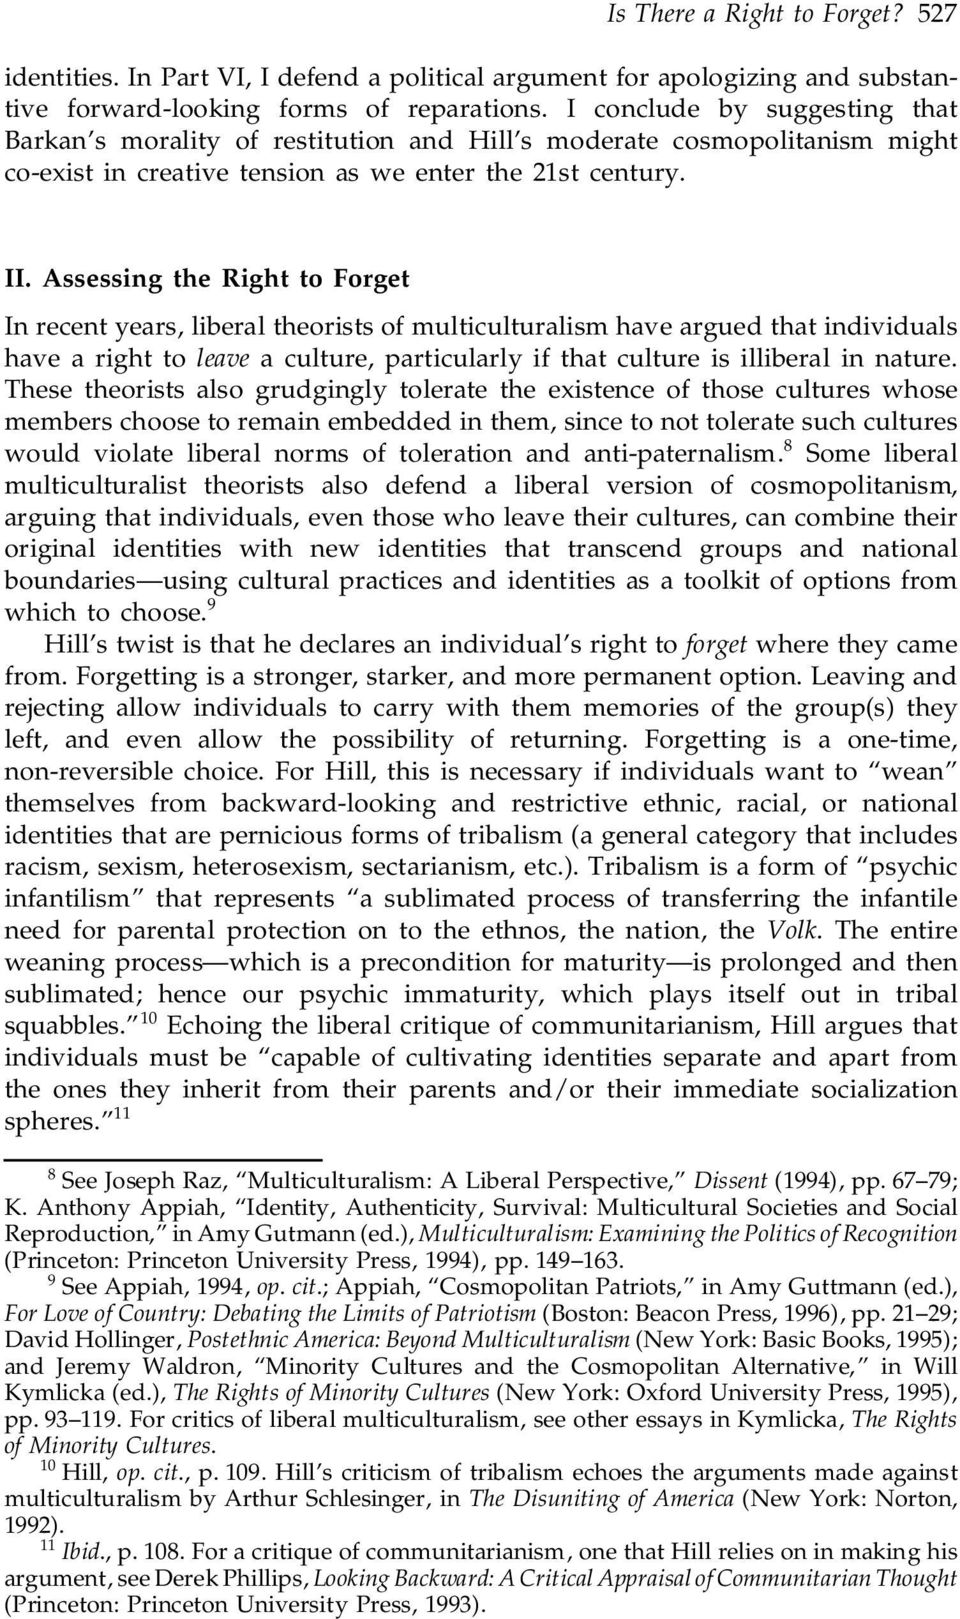 Assessing the Right to Forget In recent years, liberal theorists of multiculturalism have argued that individuals have a right to leave a culture, particularly if that culture is illiberal in nature.